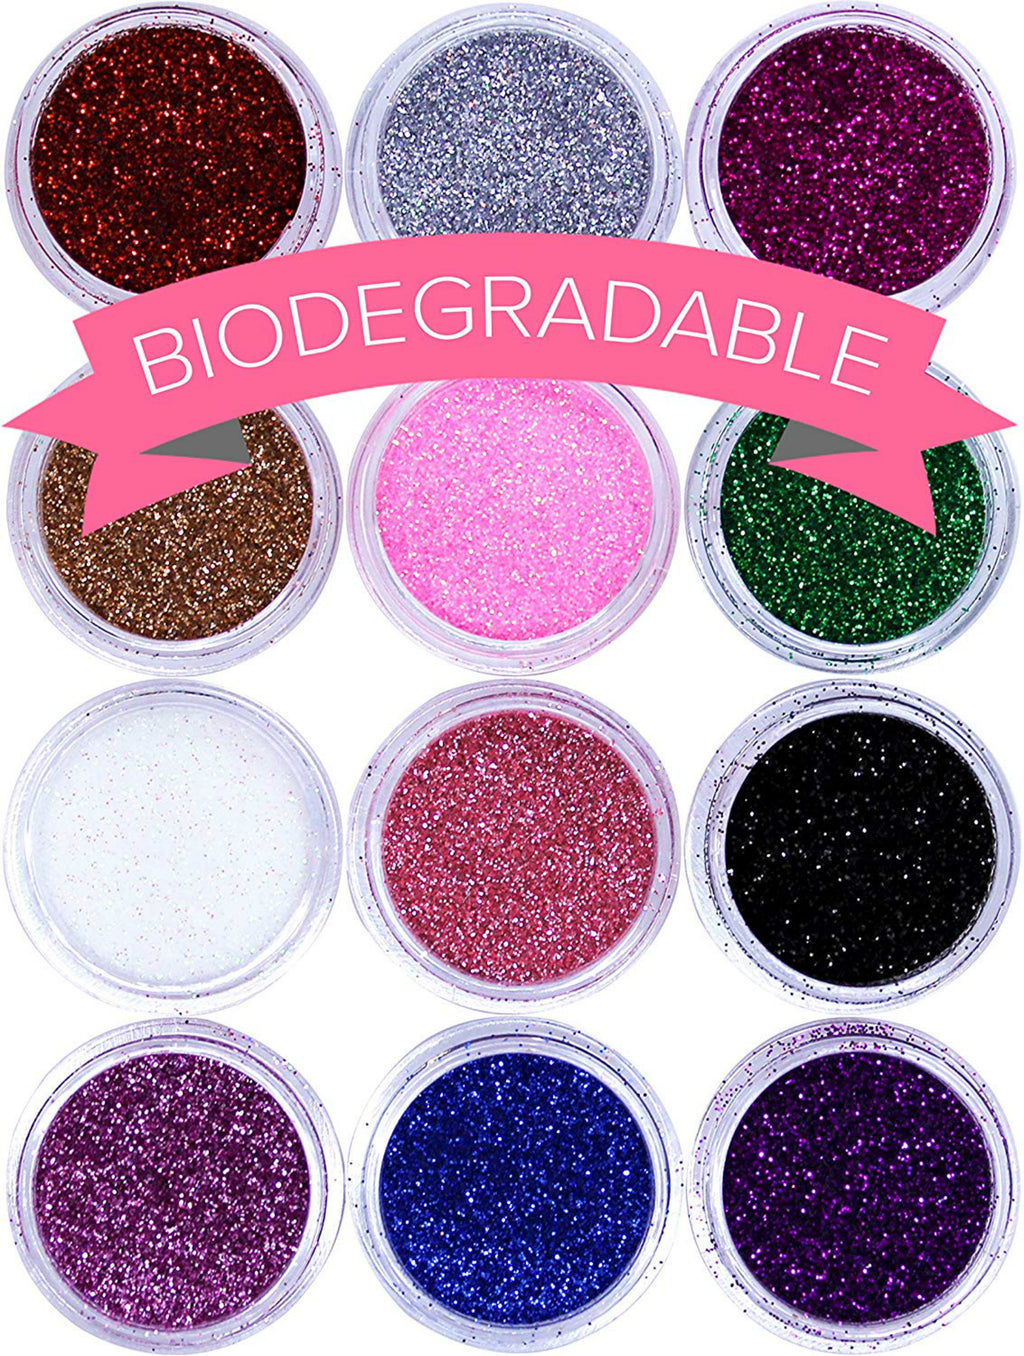 NYK1 Biodegradable Glitter for Gel Nail Art Pots Set ULTRA FINE DUST POWDER